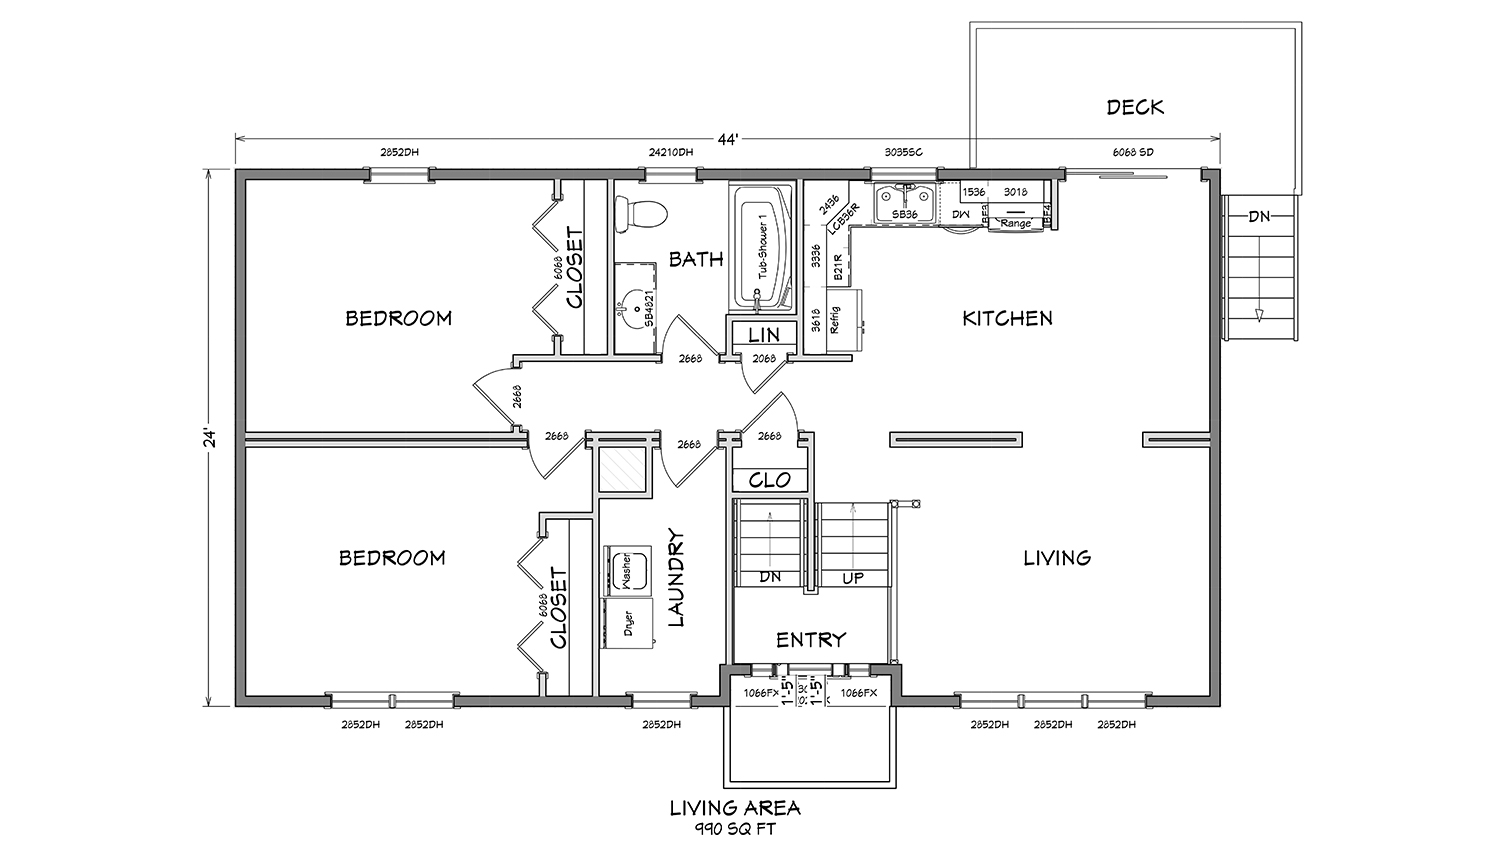 Bl001 cape cod modular home floor plan 01 glenco inc for Cape cod floor plans